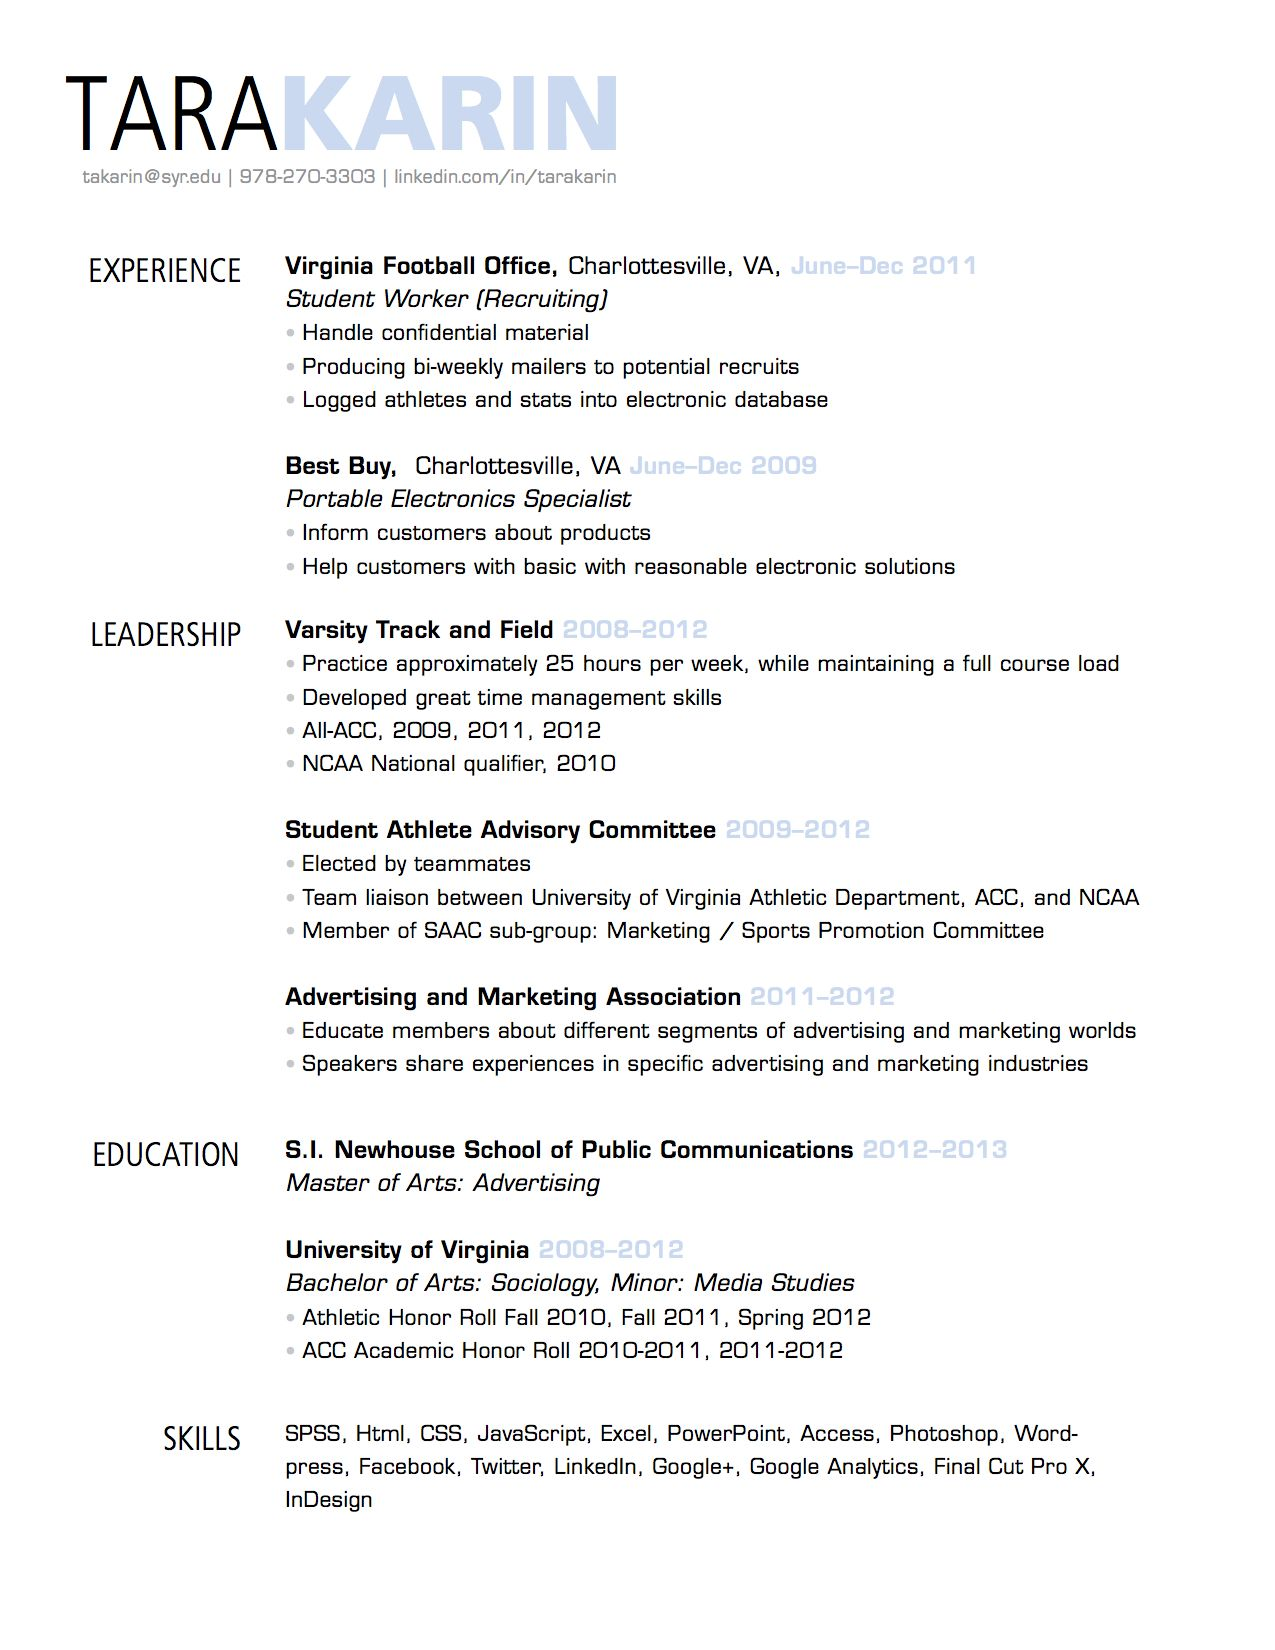 Simple, clean resume design with clear section headings | Resumes ...